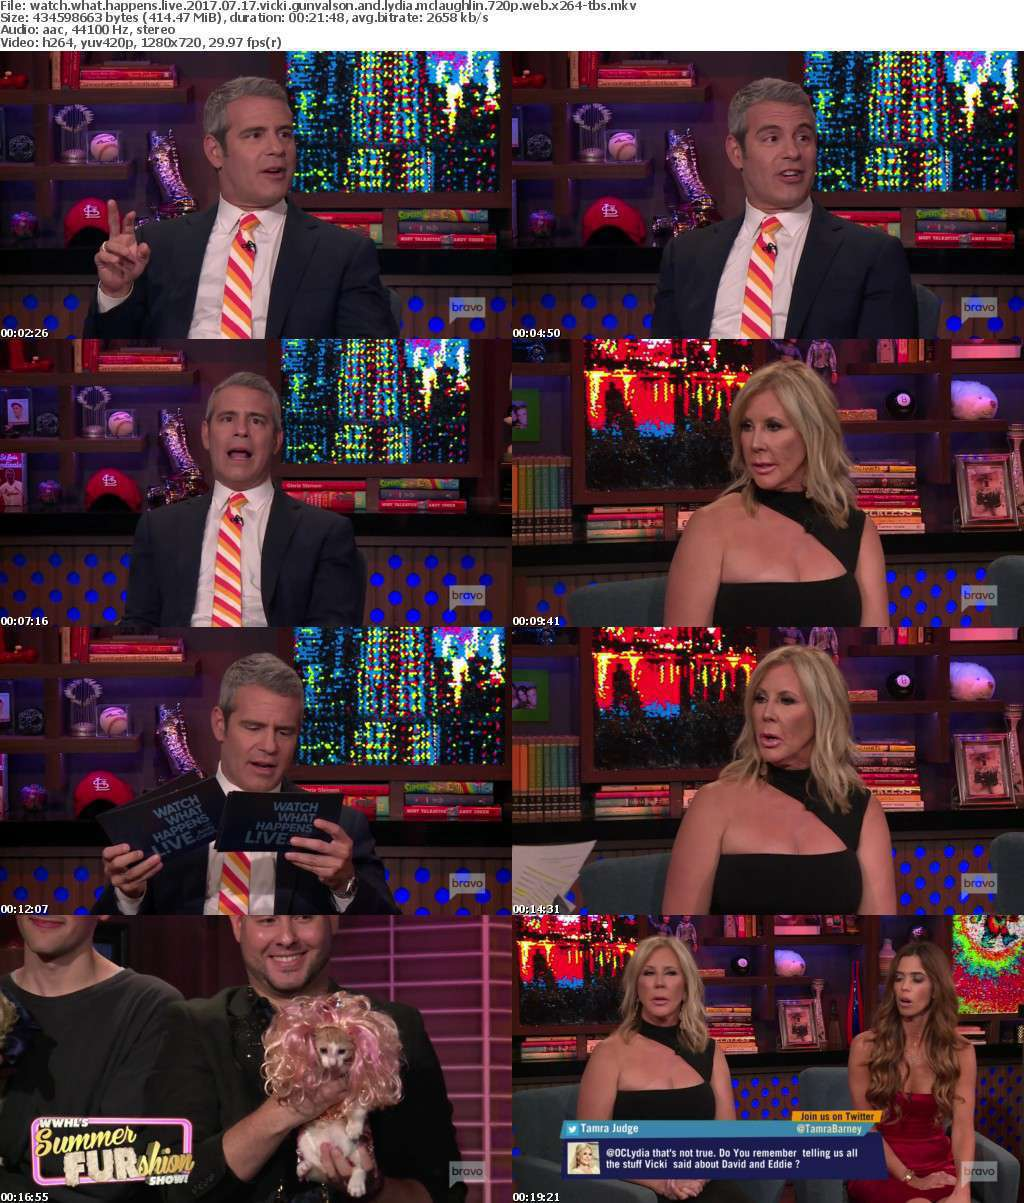 Watch What Happens Live 2017 07 17 Vicki Gunvalson and Lydia McLaughlin 720p WEB x264-TBS